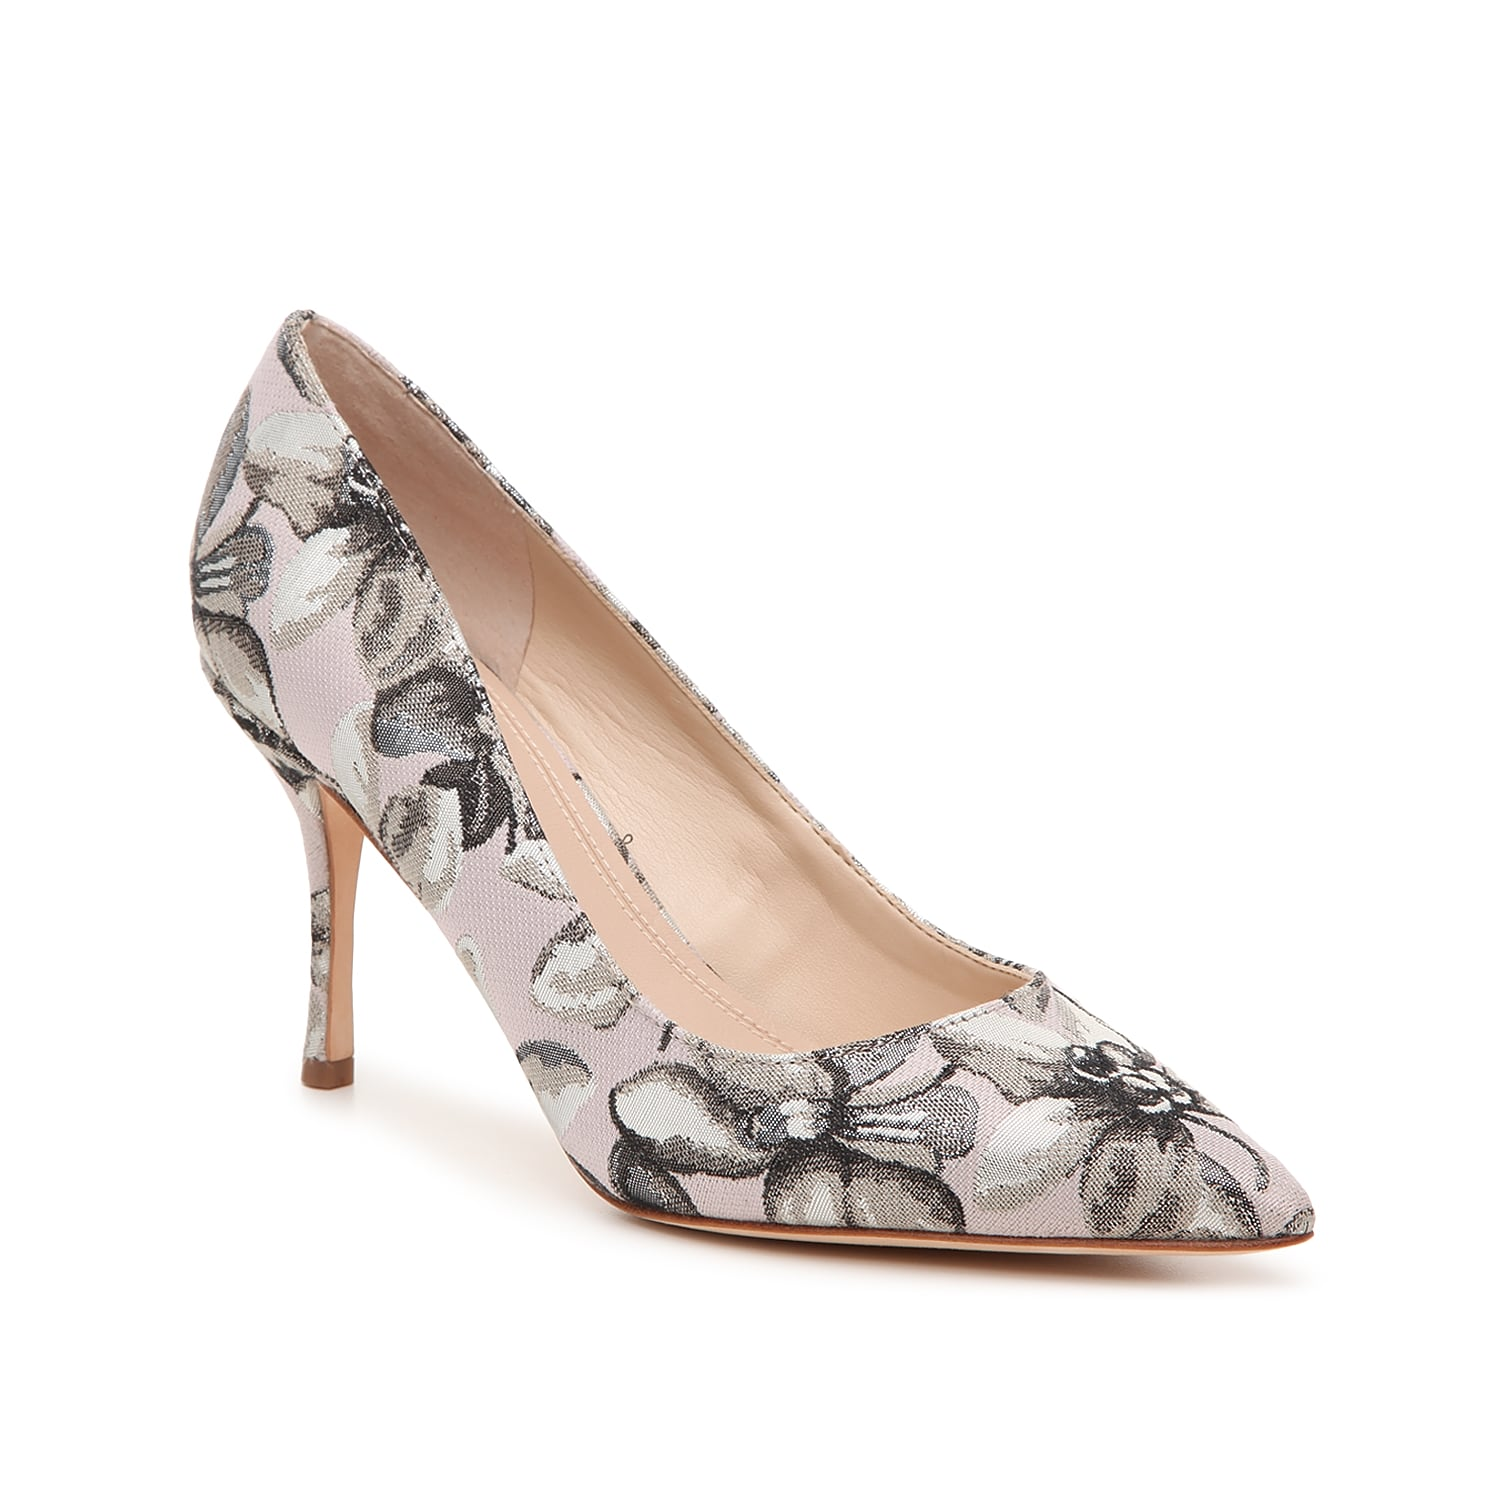 Freshen up your office wear with the Carter pump from Marc Fisher Ltd. This classic silhouette is fashioned with a leather lining and floral fabric that will make your ensemble flair!